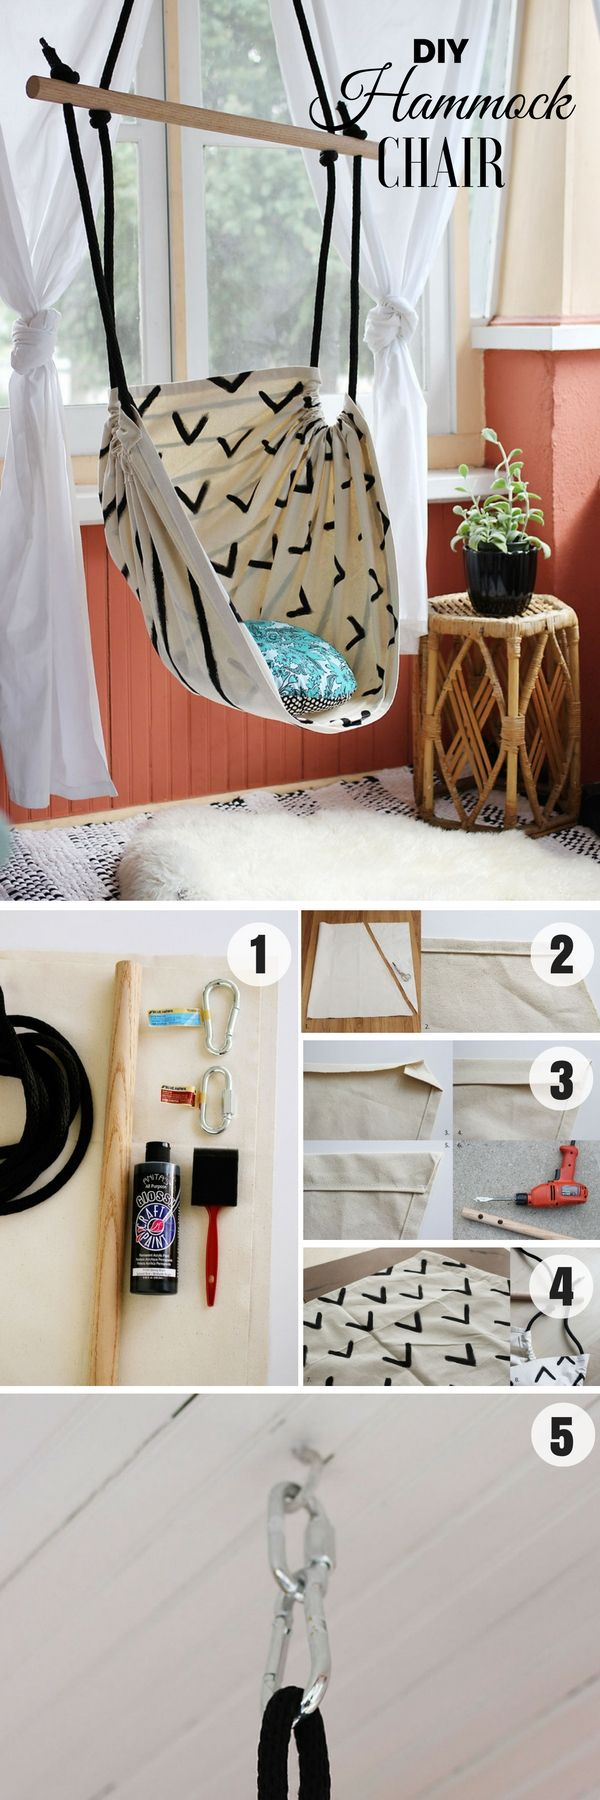 Best 25+ Hanging hammock chair ideas on Pinterest | Hammock chair ...